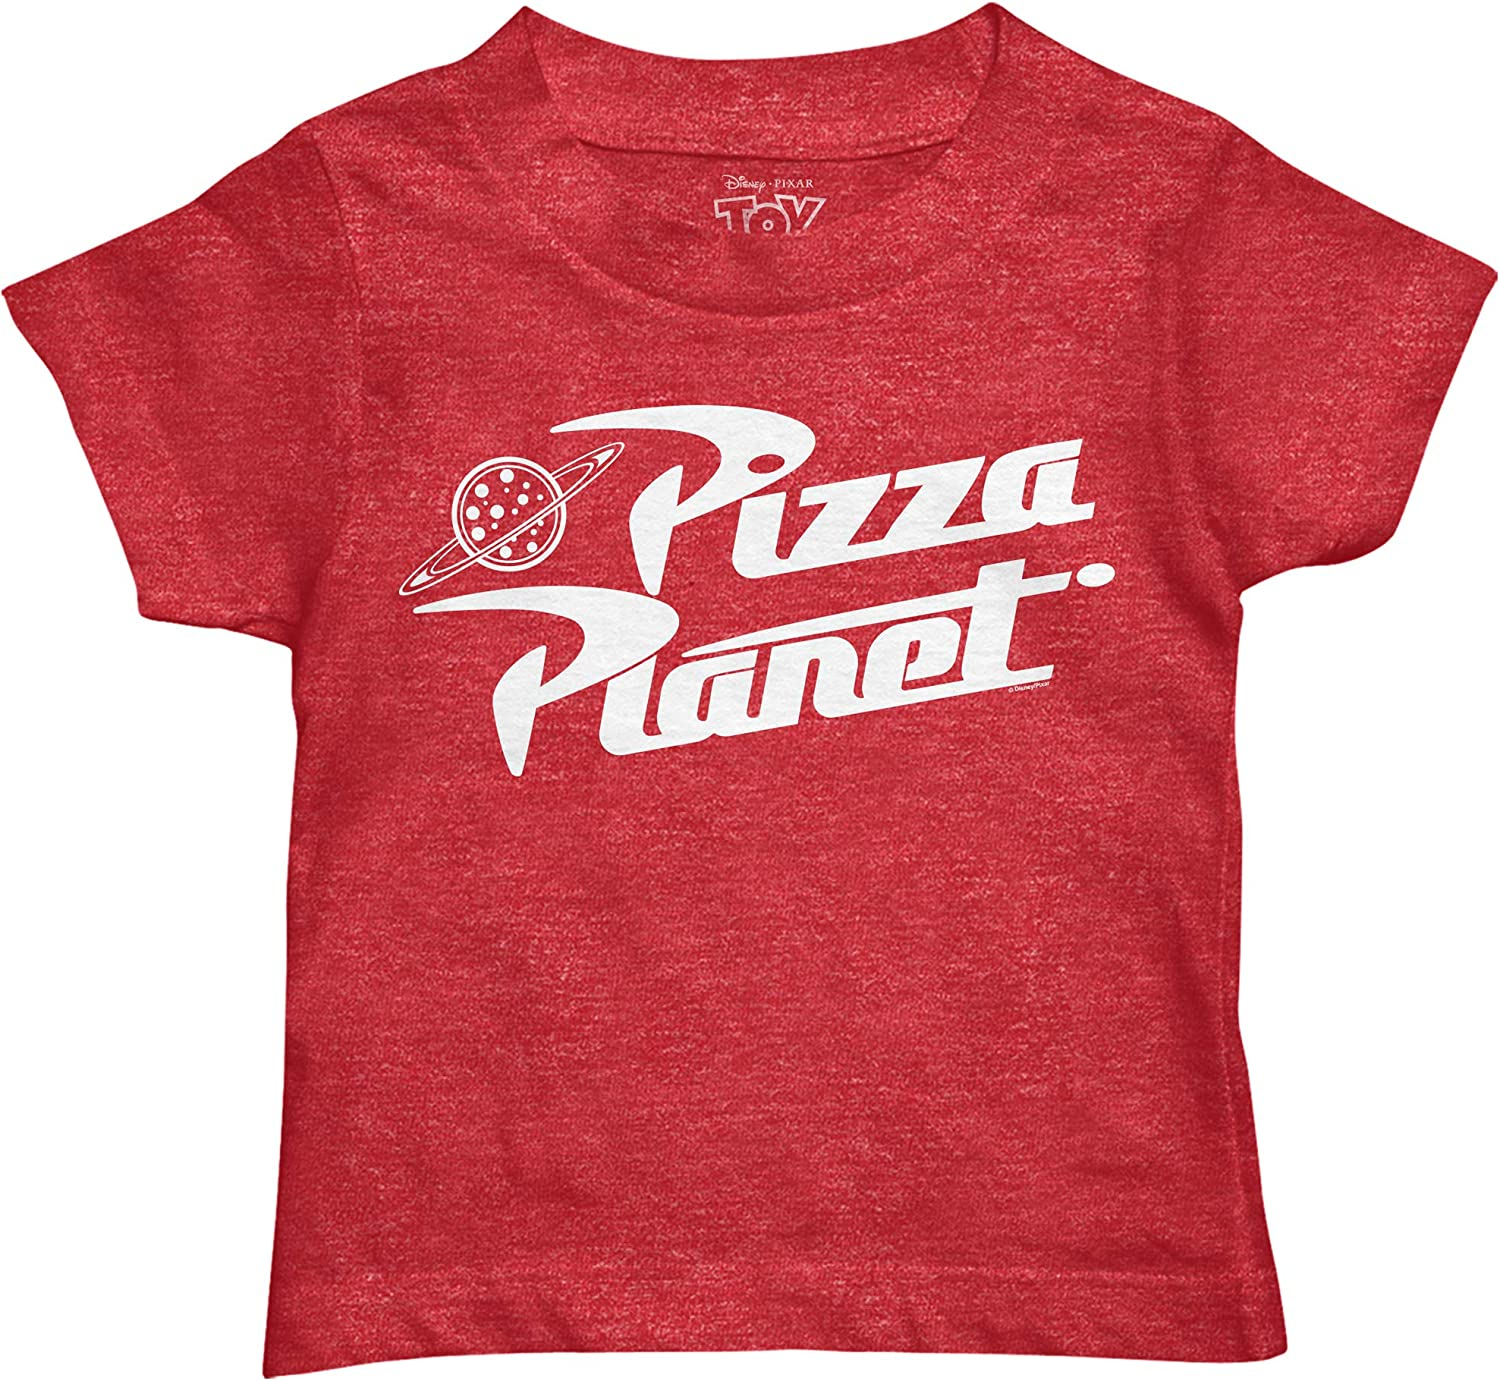 Disney Pixar Toy Story Pizza Planet Boys Toddler Juvy Humor Funny Tee T-Shirt